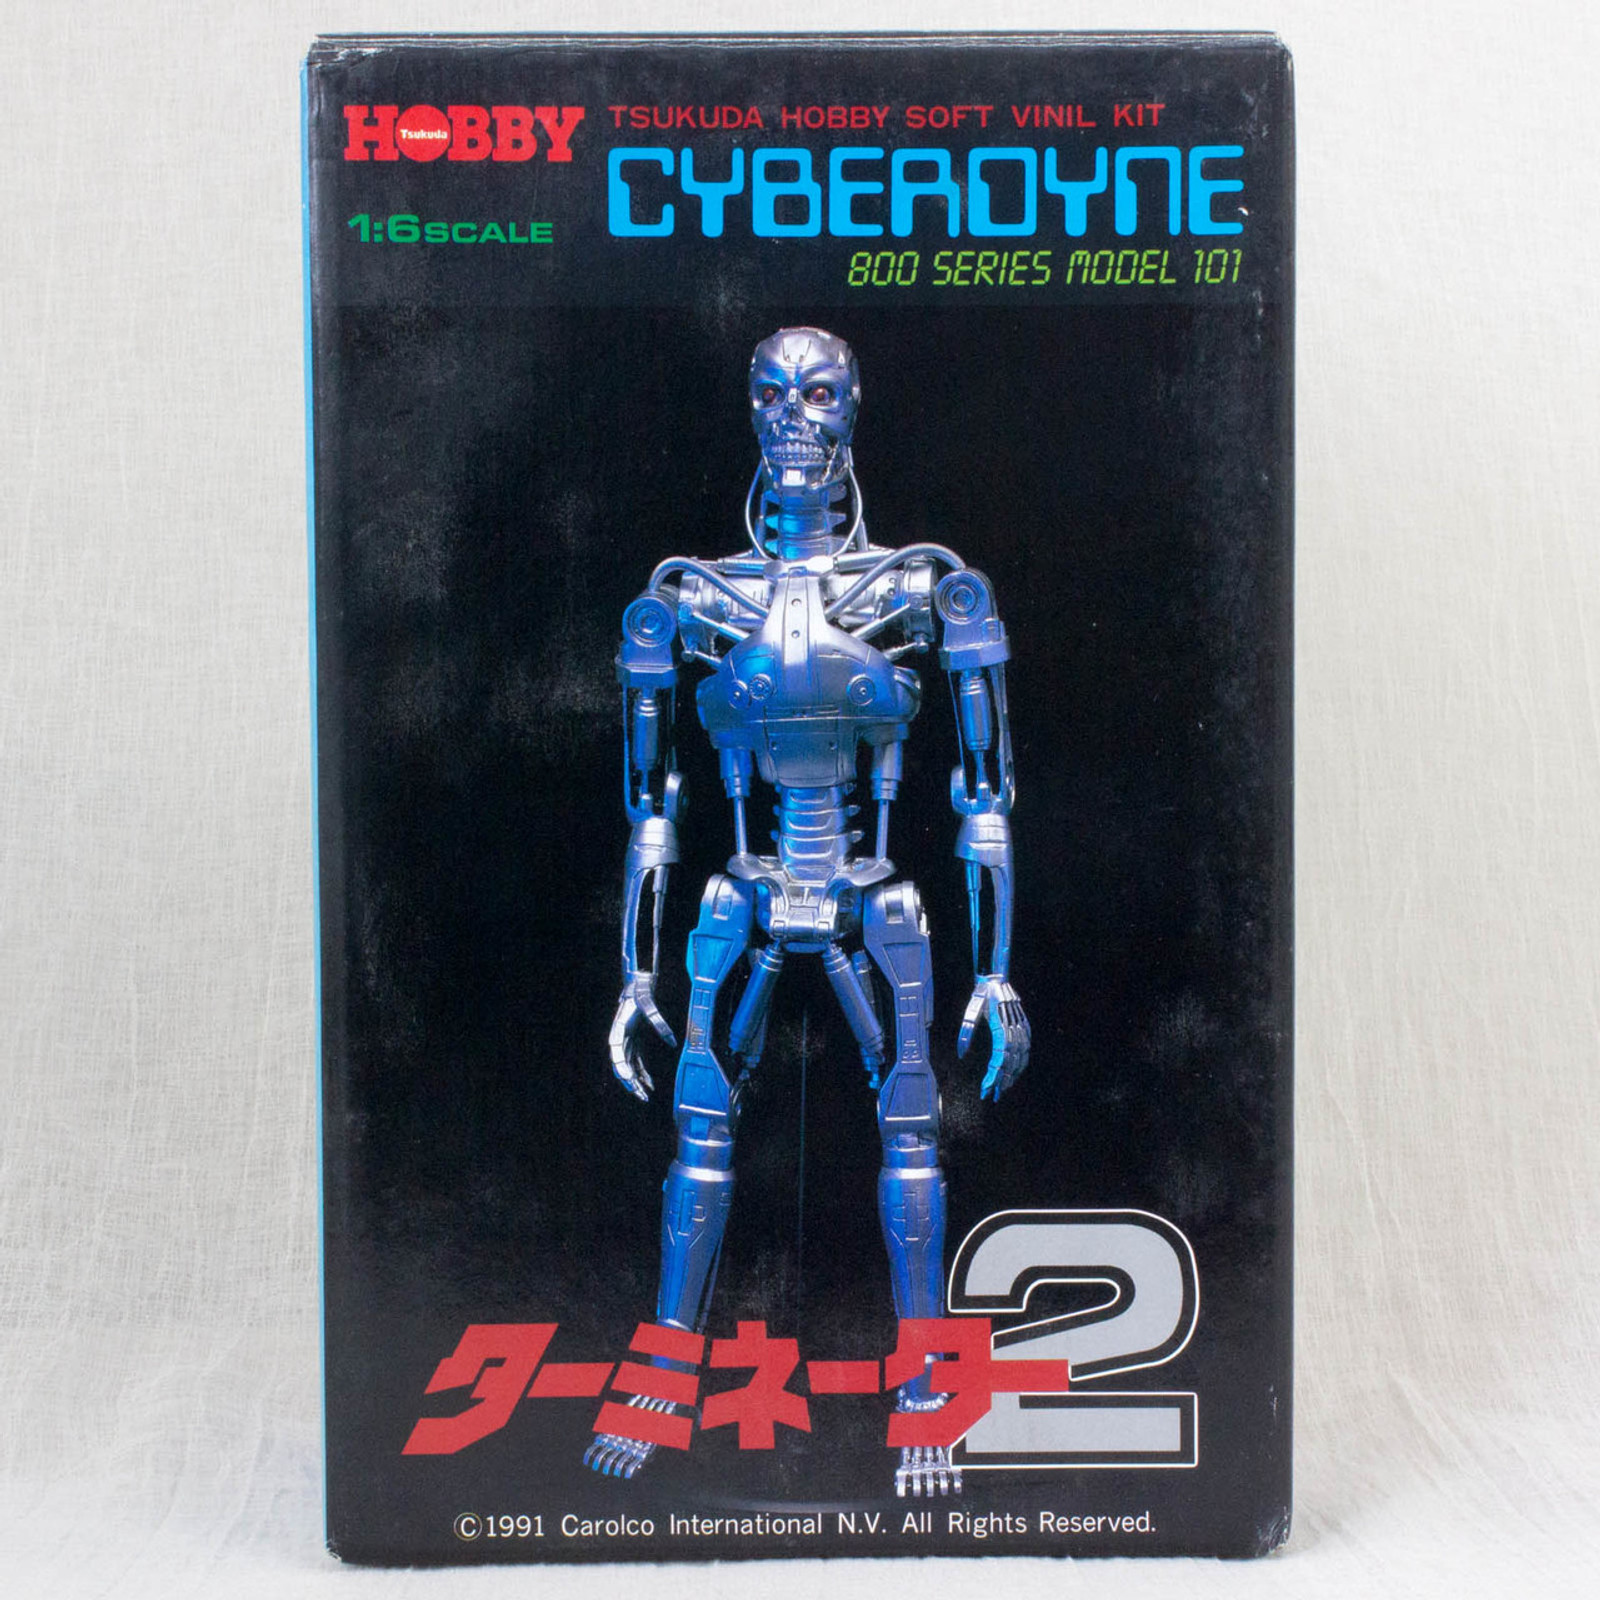 Terminator 2 Cyerdyne 800 Series Model 101 Soft Vinyl Kit 1/6 Tsukuda Hobby